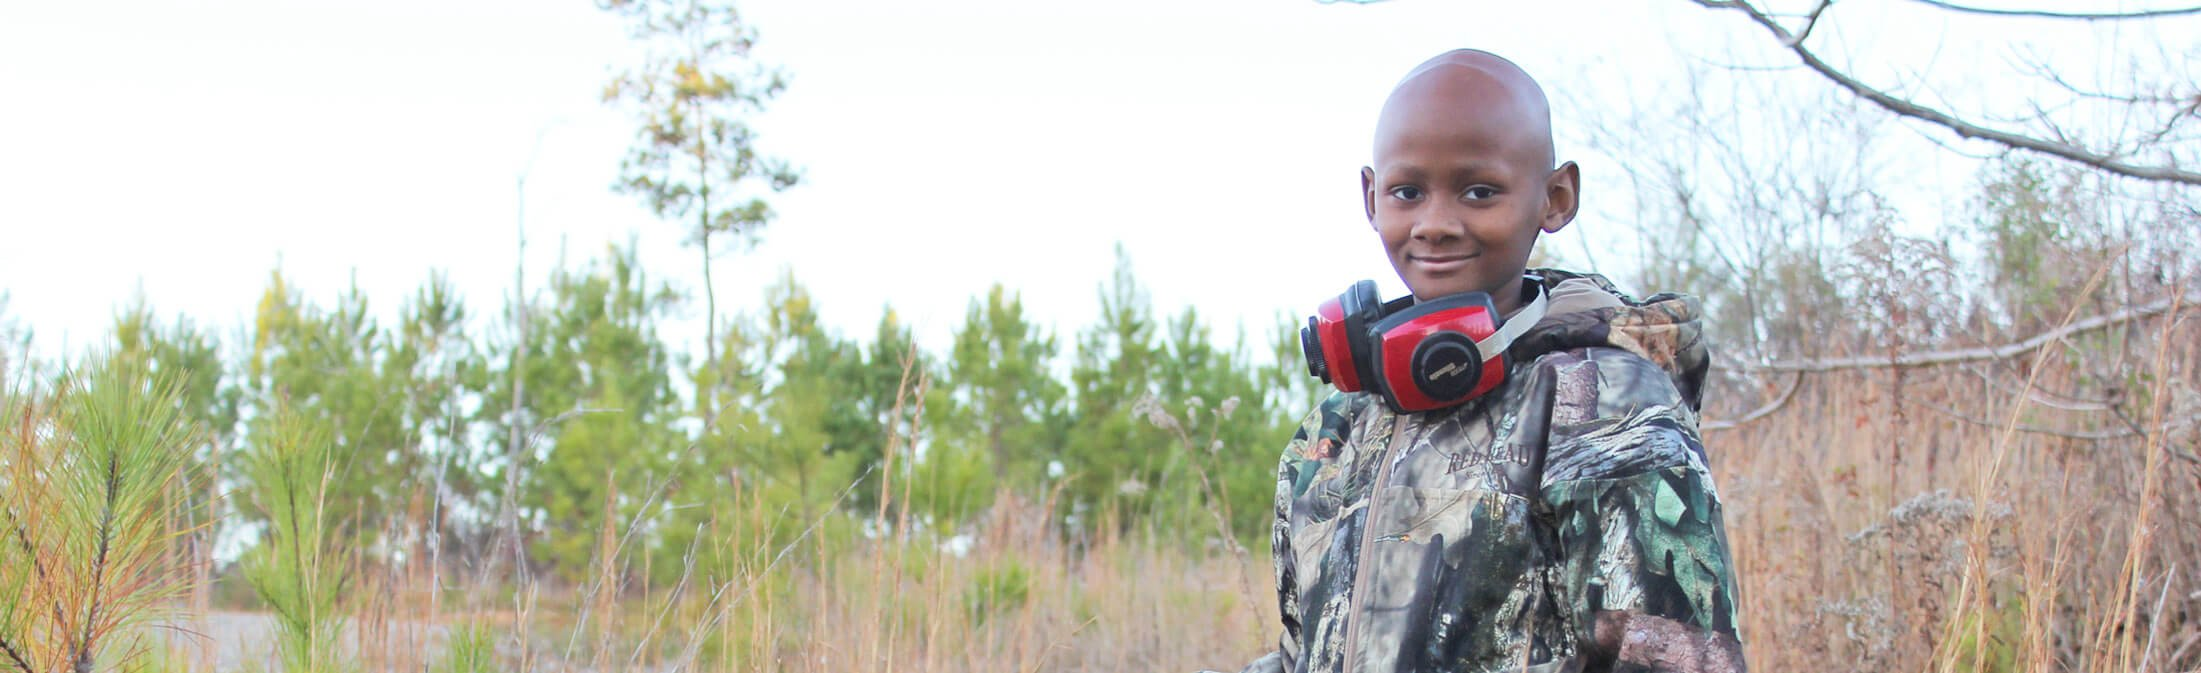 Catch-A-Dream child pauses to reflect on hunting adventure